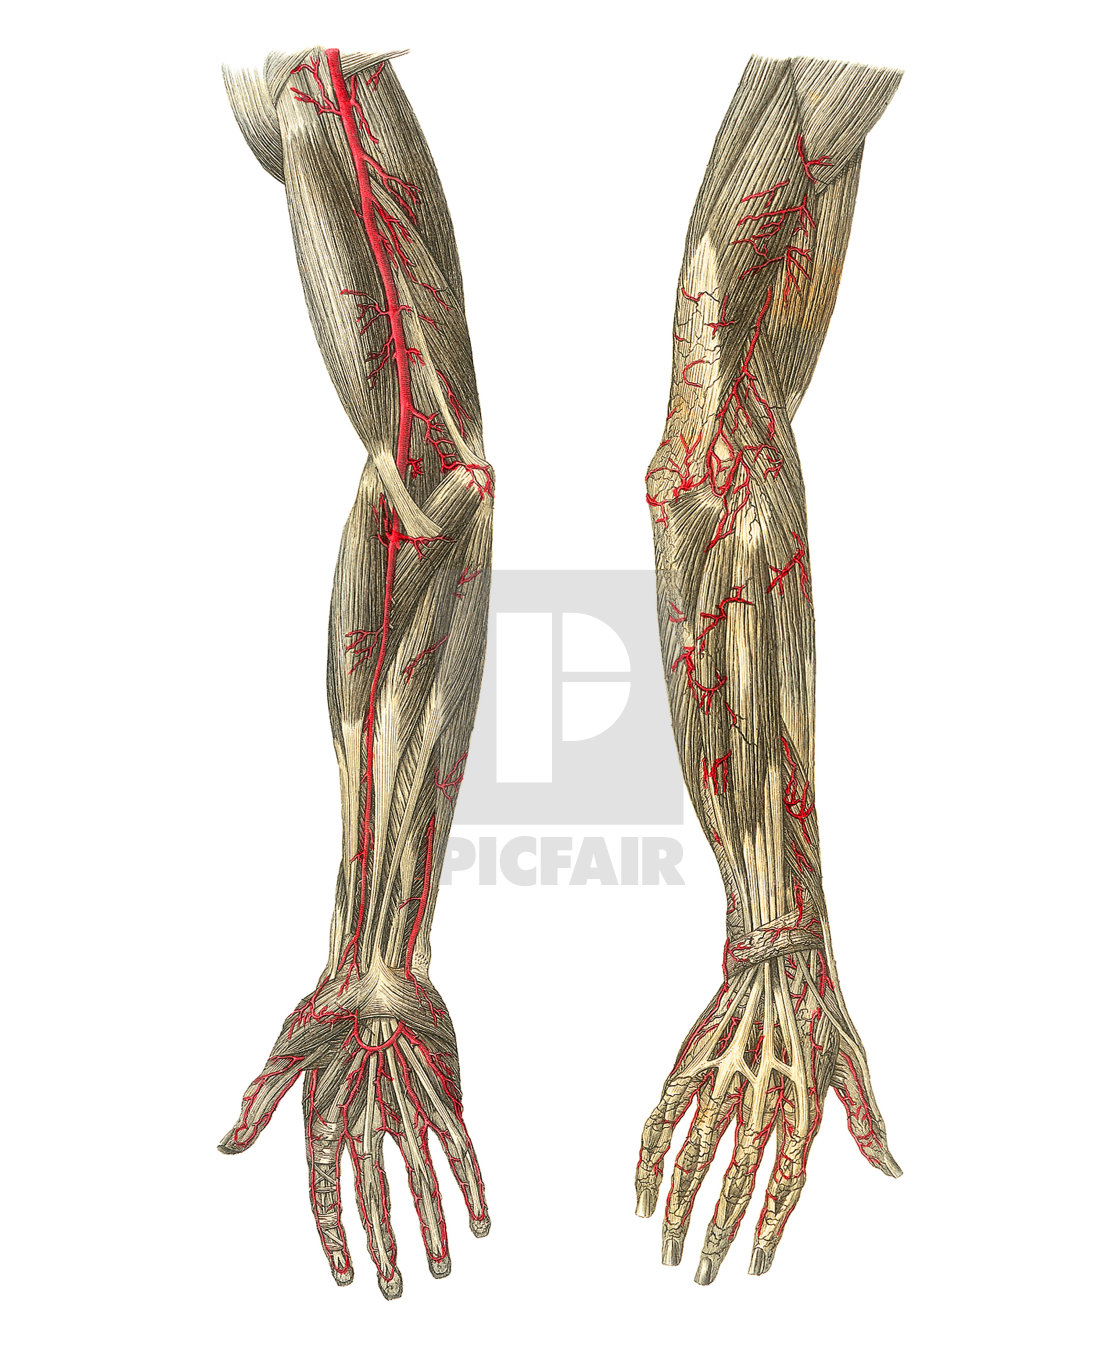 Blood Vessels Of The Arms Artwork License Download Or Print For